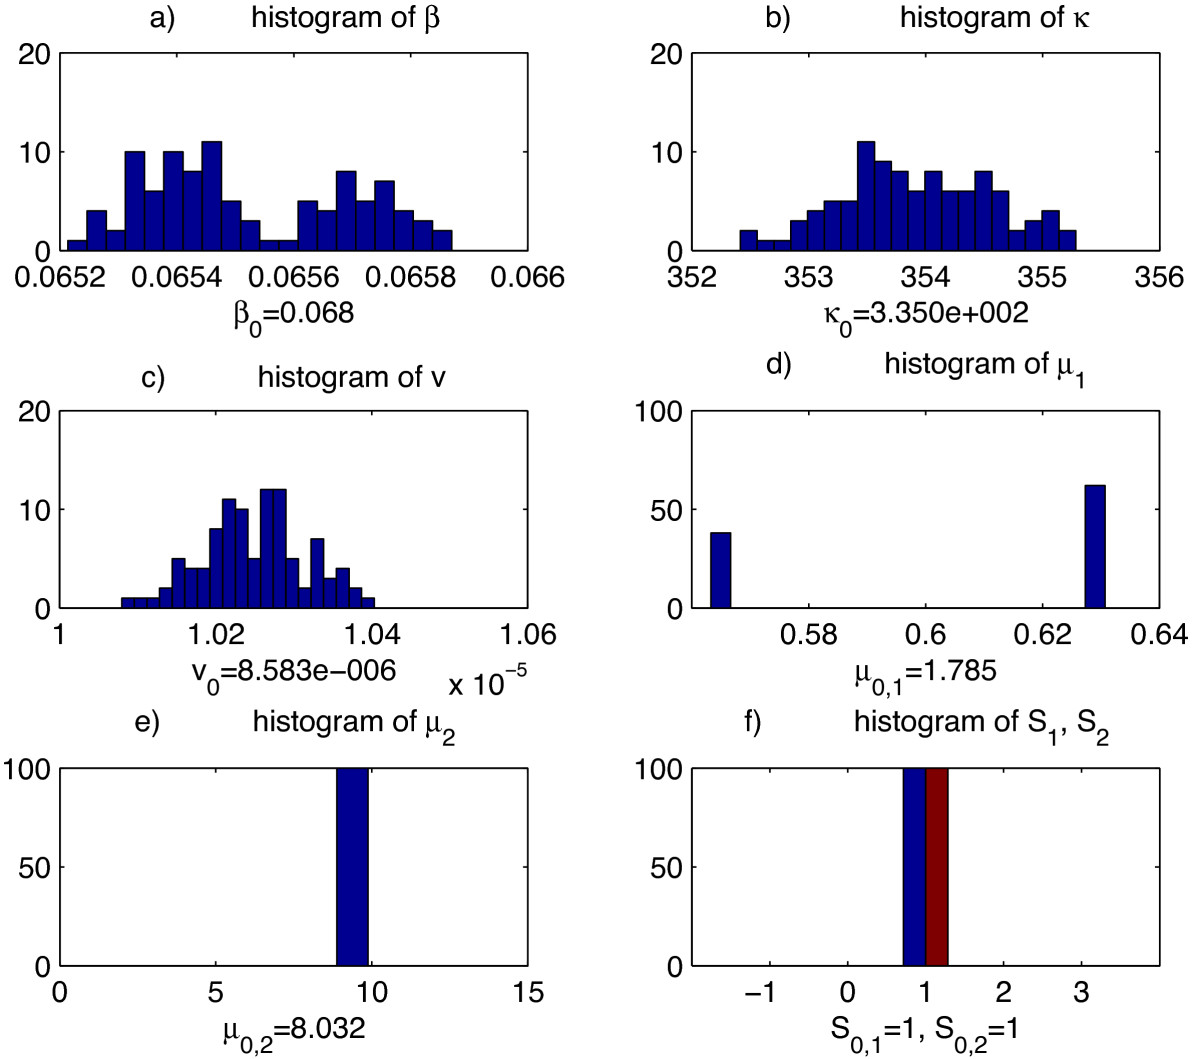 https://static-content.springer.com/image/art%3A10.1186%2F1752-0509-8-19/MediaObjects/12918_2013_Article_1286_Fig6_HTML.jpg